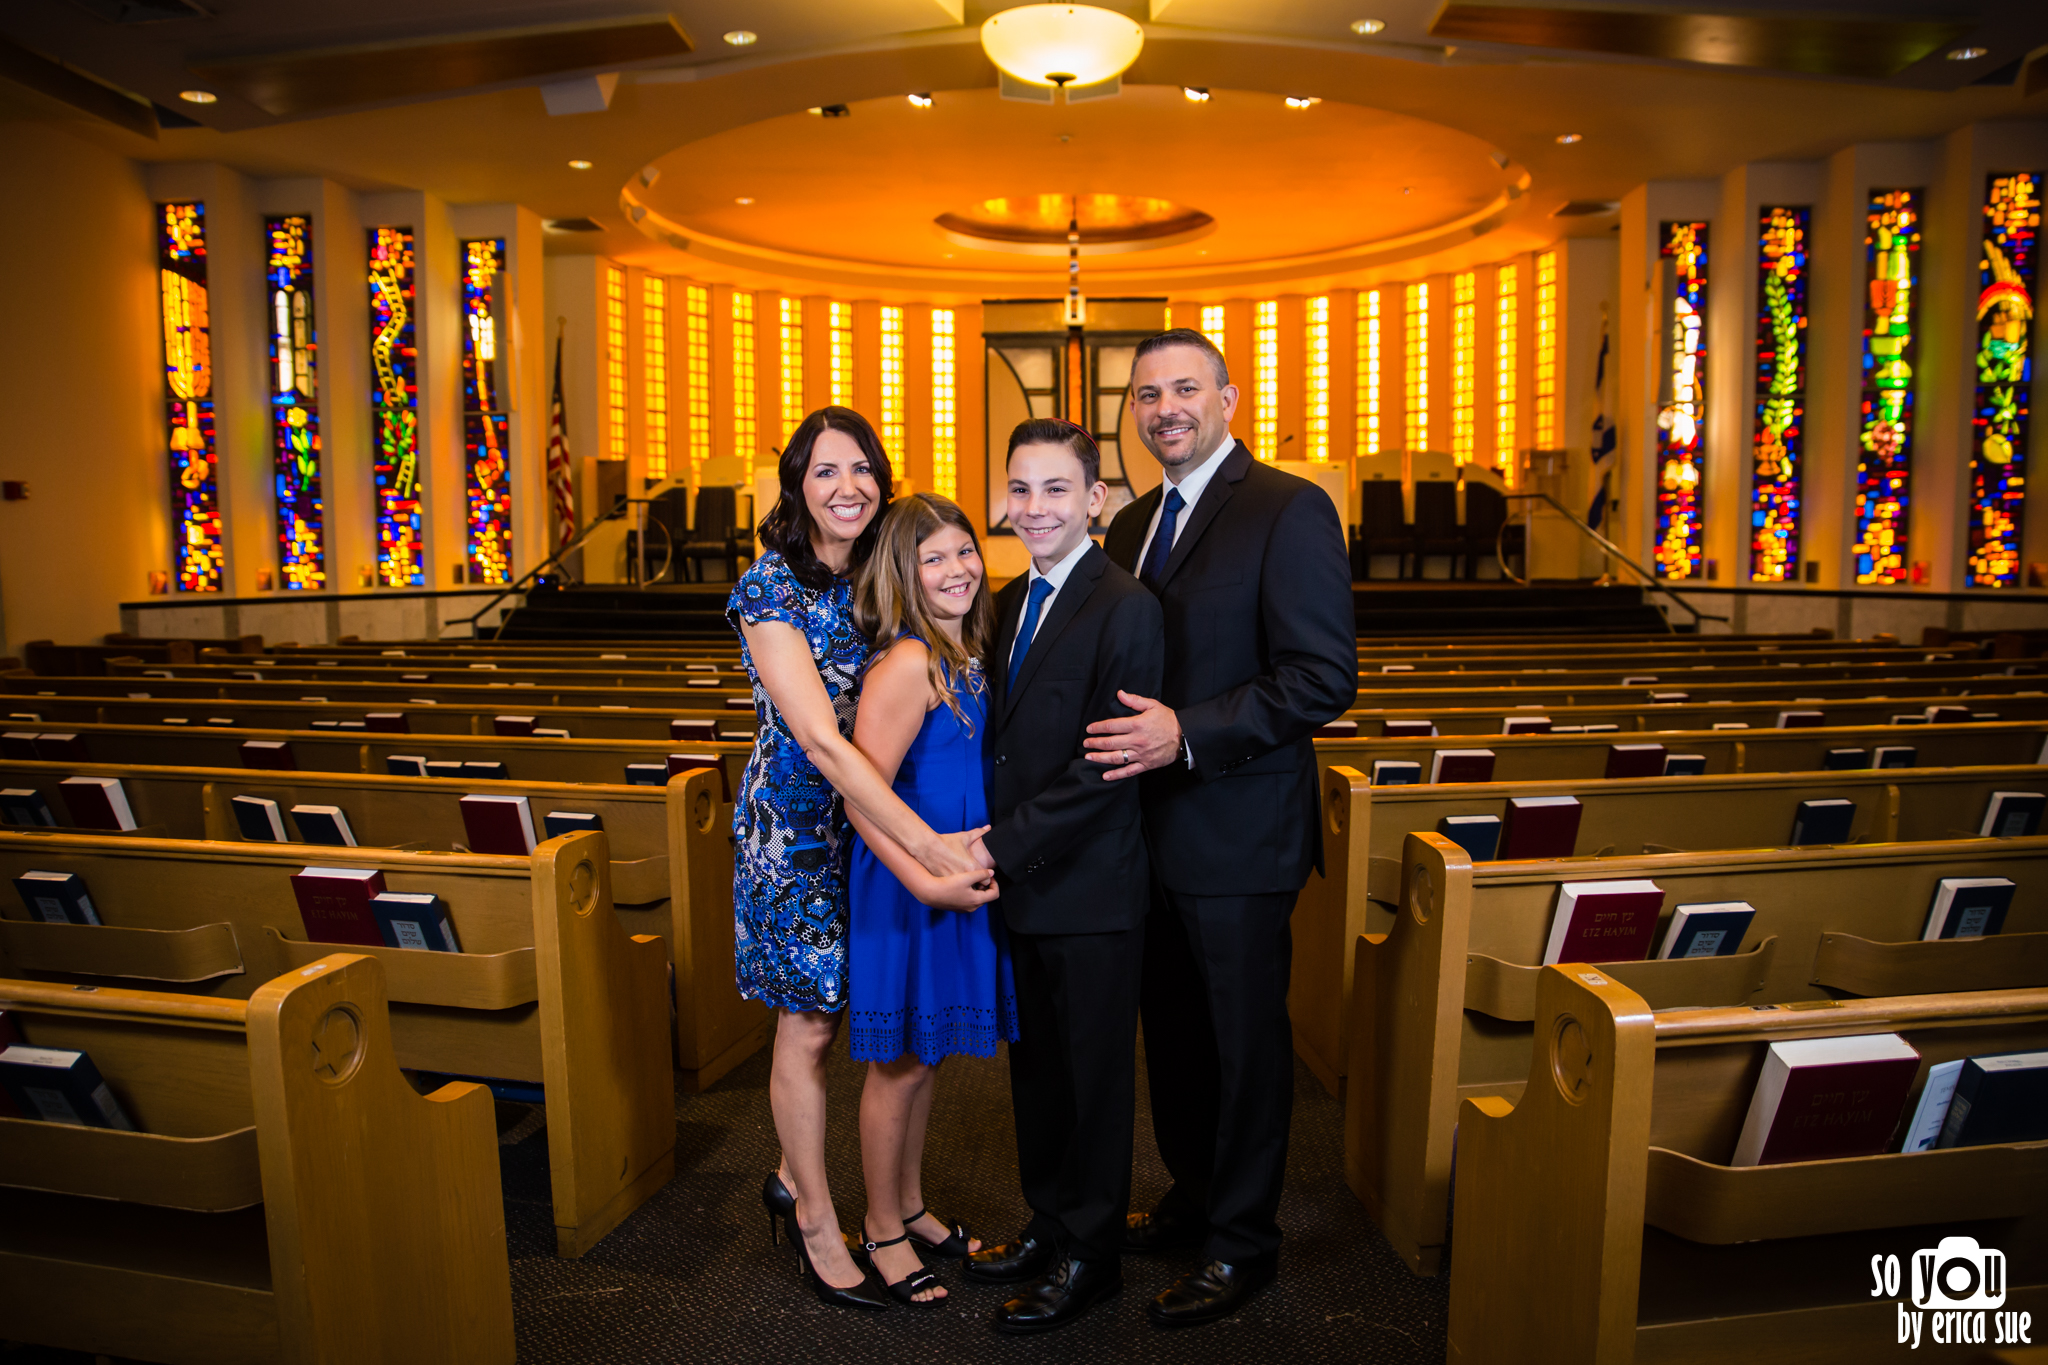 bar-mitzvah-pembroke-lakes-golf-country-club-mitzvah-photography-so-you-by-erica-sue.jpg